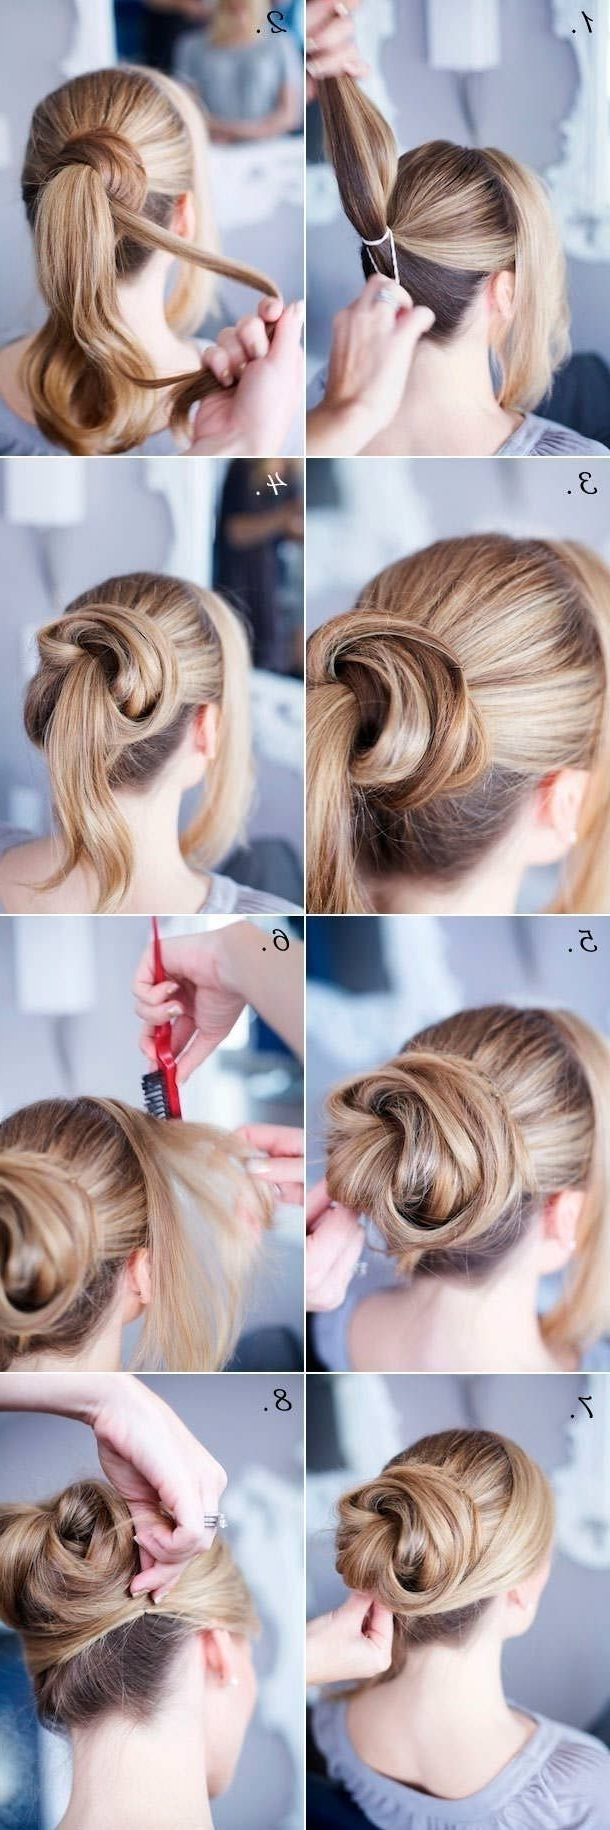 1282 Best Hair Styles Images On Pinterest | Make Up Looks, Wigs And For Cute Updo Hairstyles For Thin Hair (View 7 of 15)